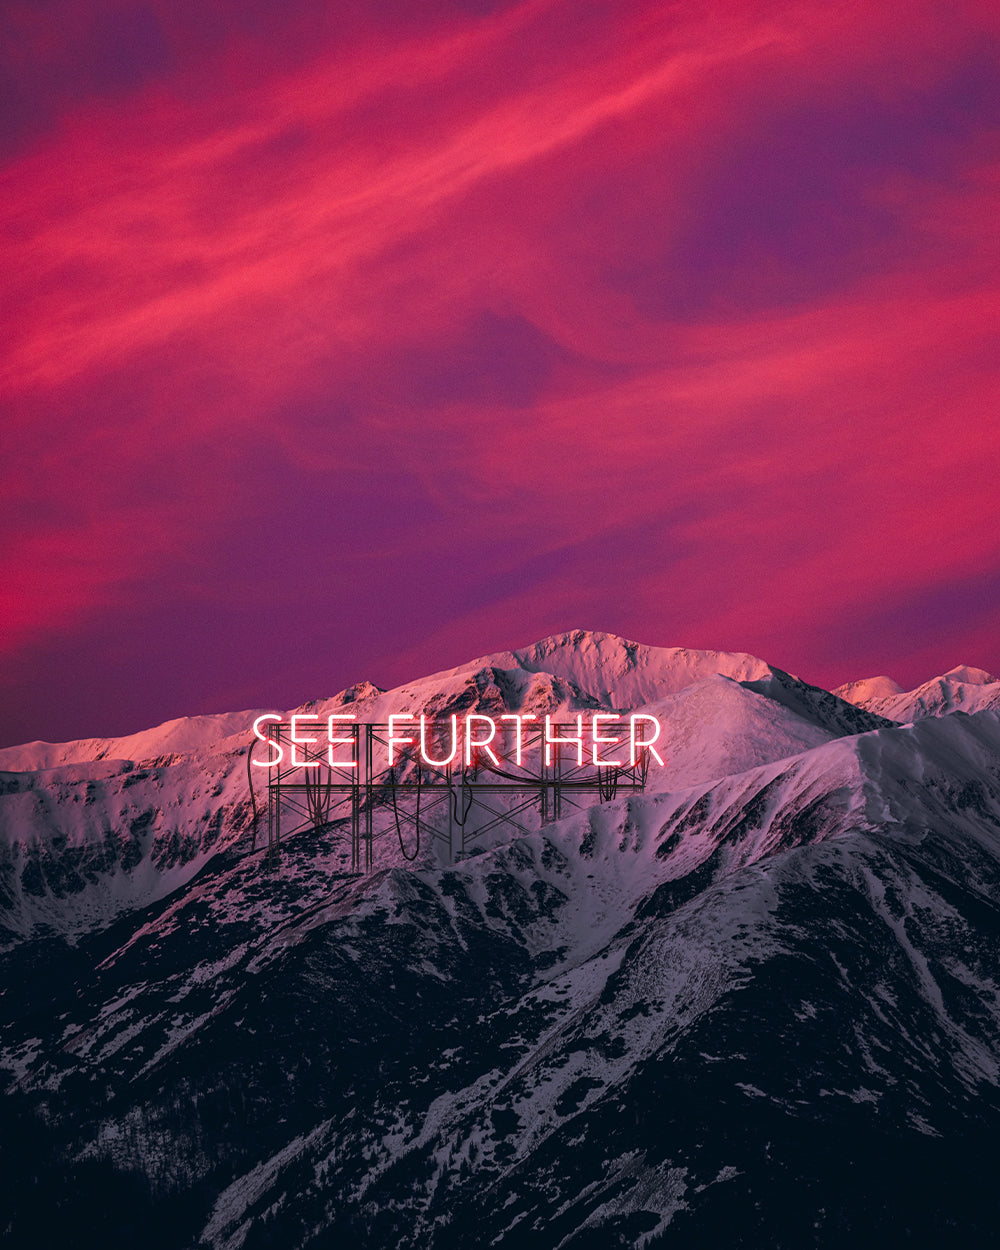 See Further by Tom Fabia